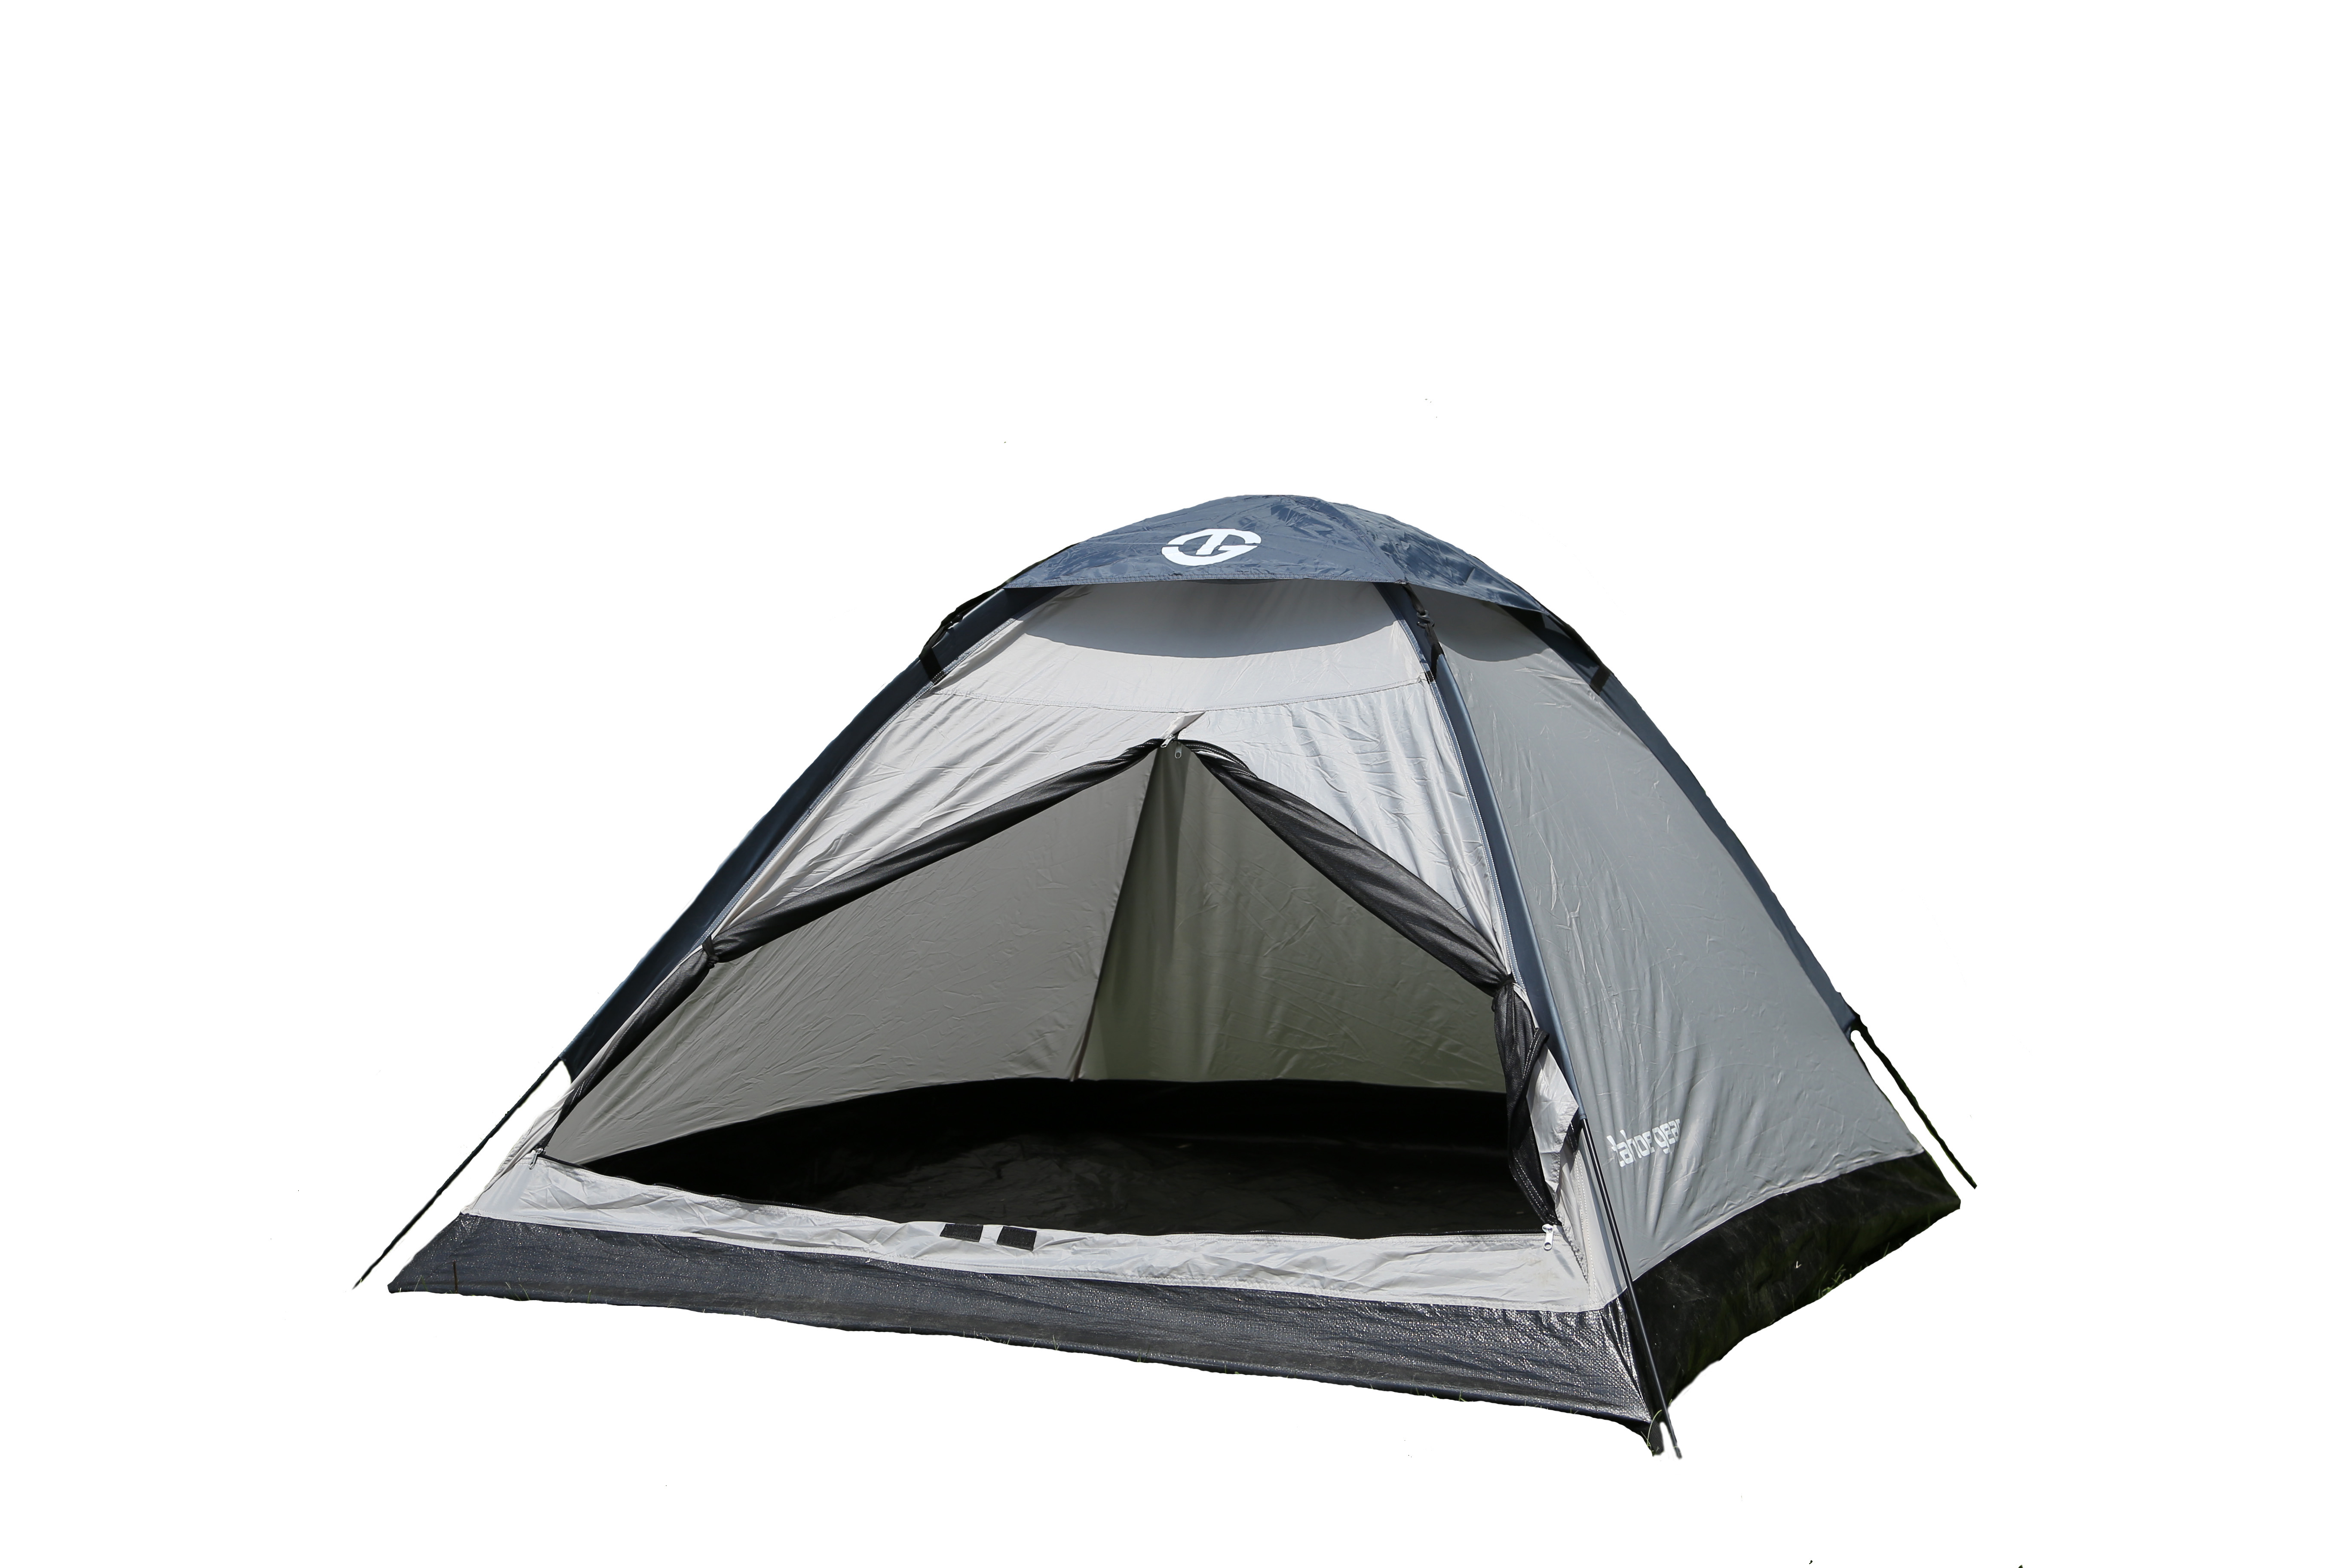 Tahoe Gear Willow 2 Person 3 Season Family Dome Waterproof C&ing Hiking Tent  sc 1 st  Walmart & 3 Room Tents